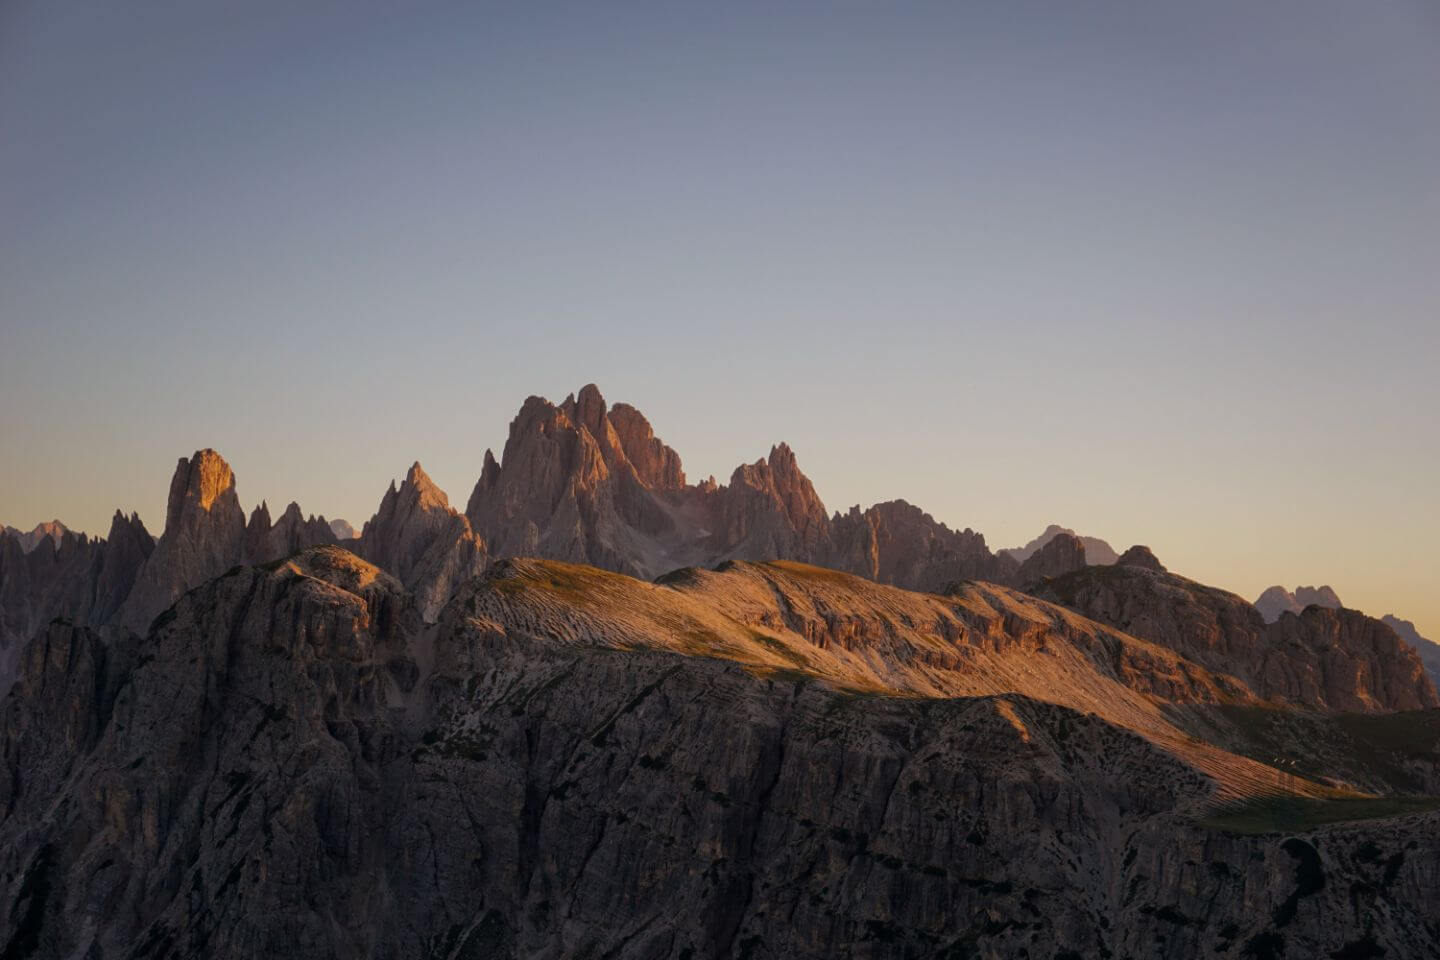 Dolomites Travel Guide - where to stay, accommodation, where to go, what to see